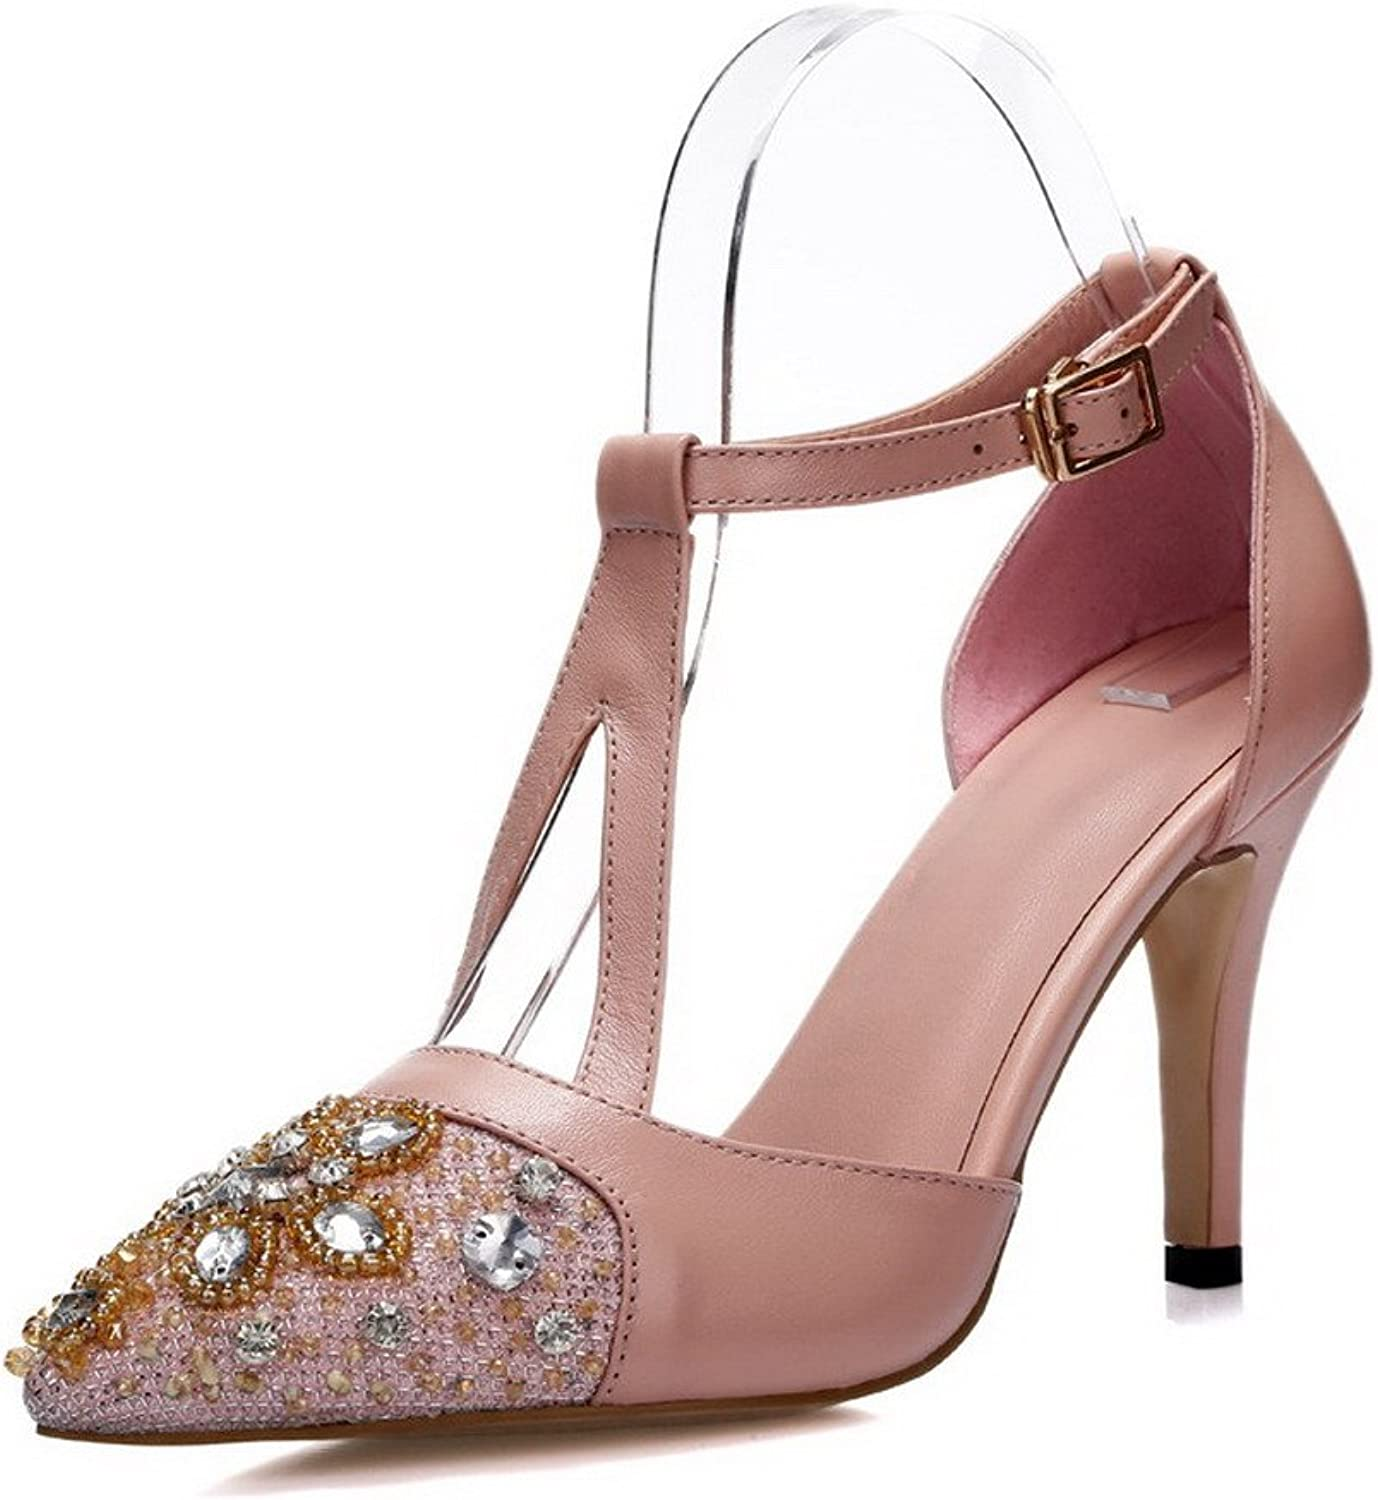 AllhqFashion Women's Closed Pointed Toe Cow Leather Buckle High Heels Sandals with Glass Diamond